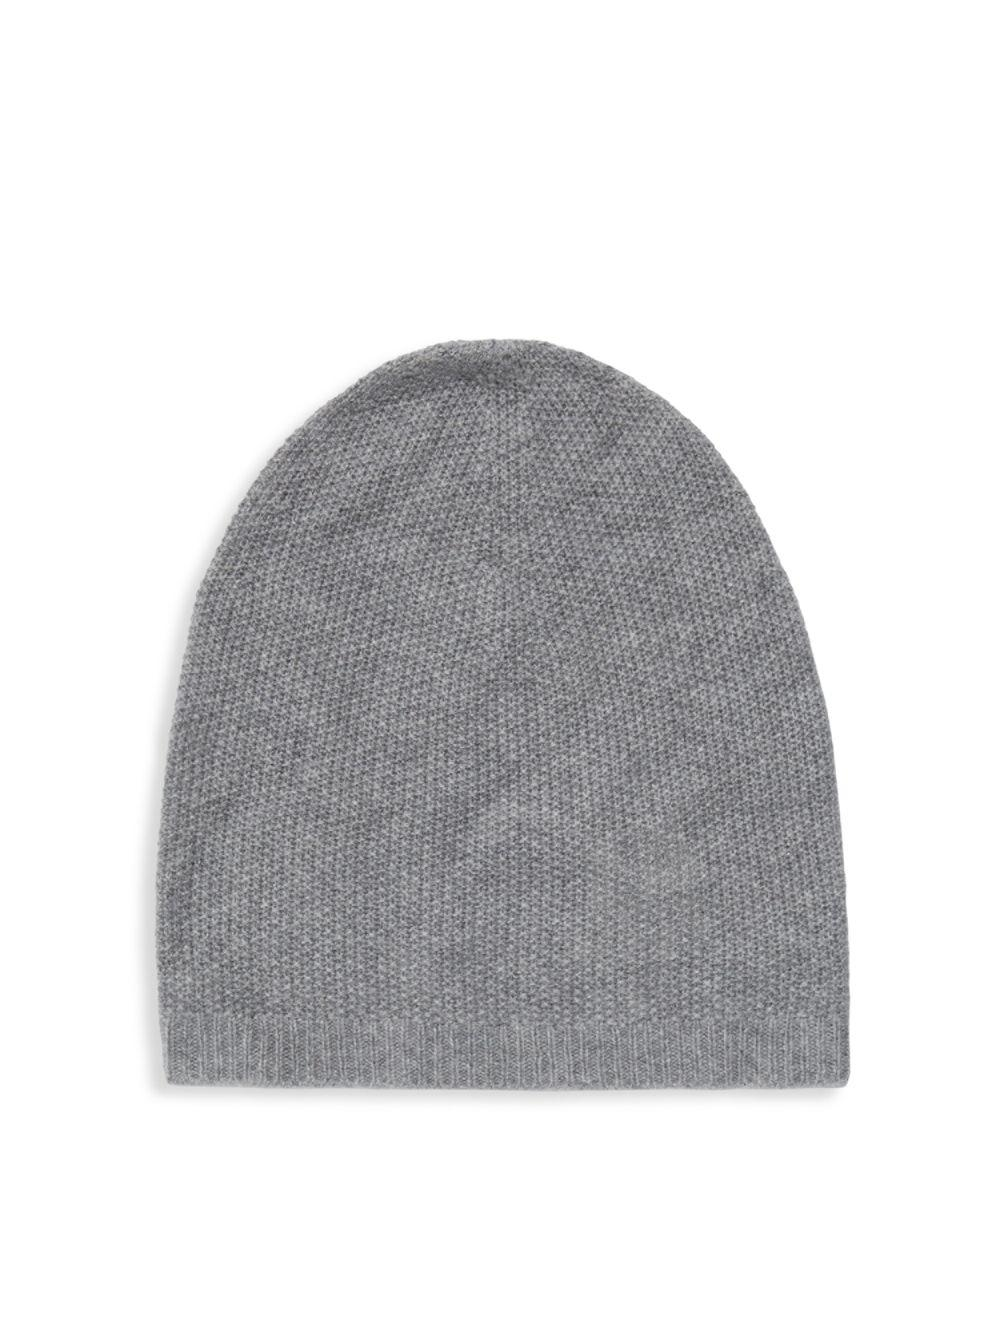 bc3facc04b087 Lyst - Saks Fifth Avenue Slouchy Pineapple Cashmere Beanie in Gray ...